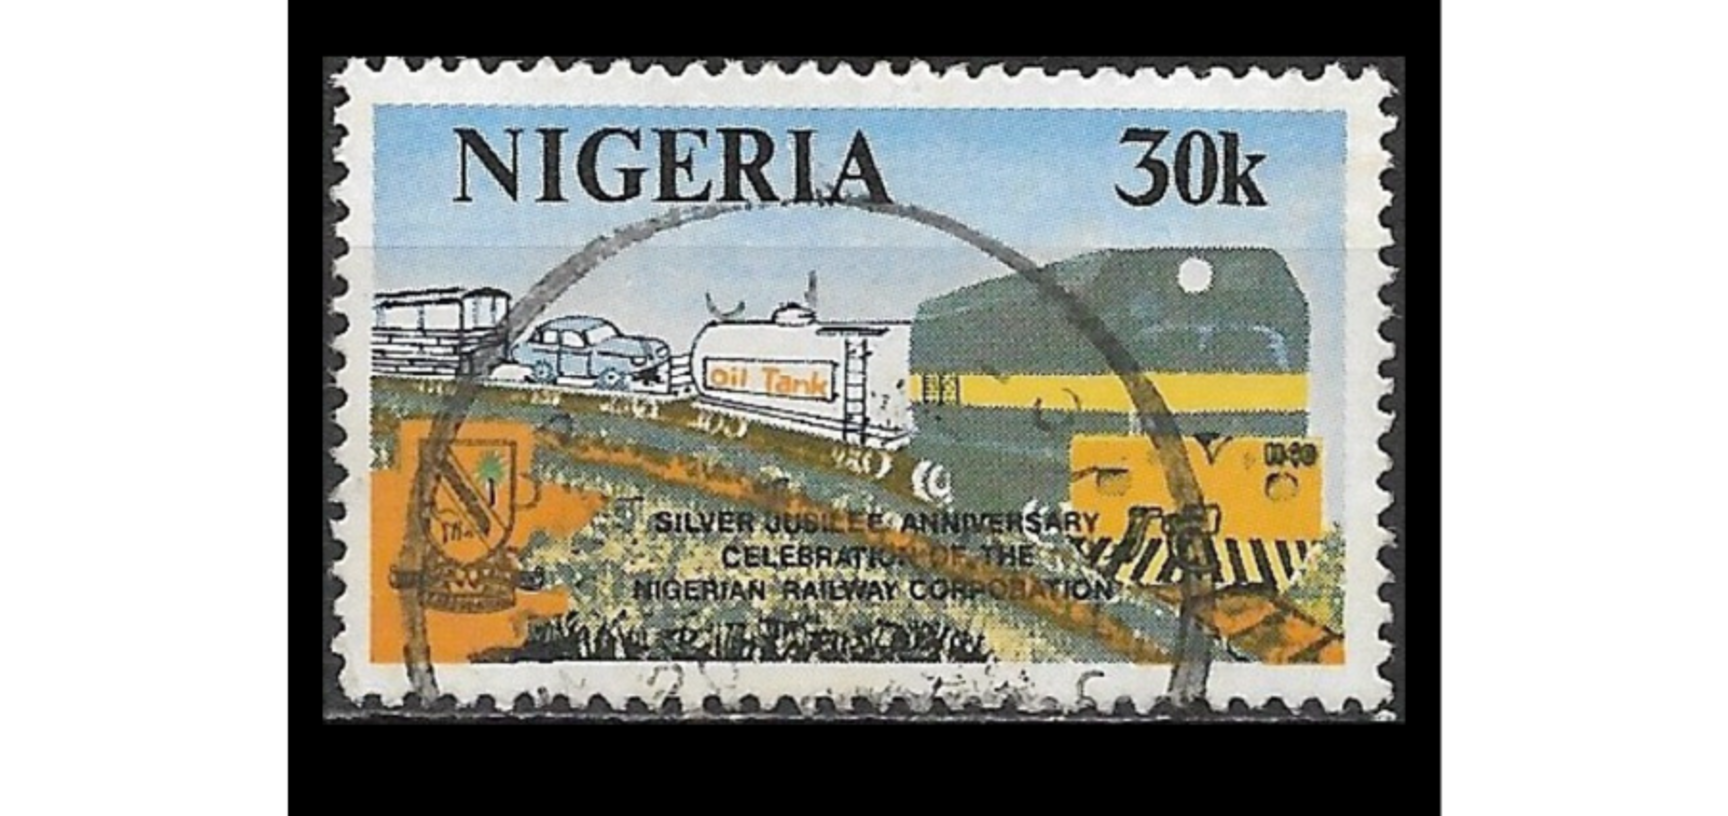 nigerian railways by oliver owen